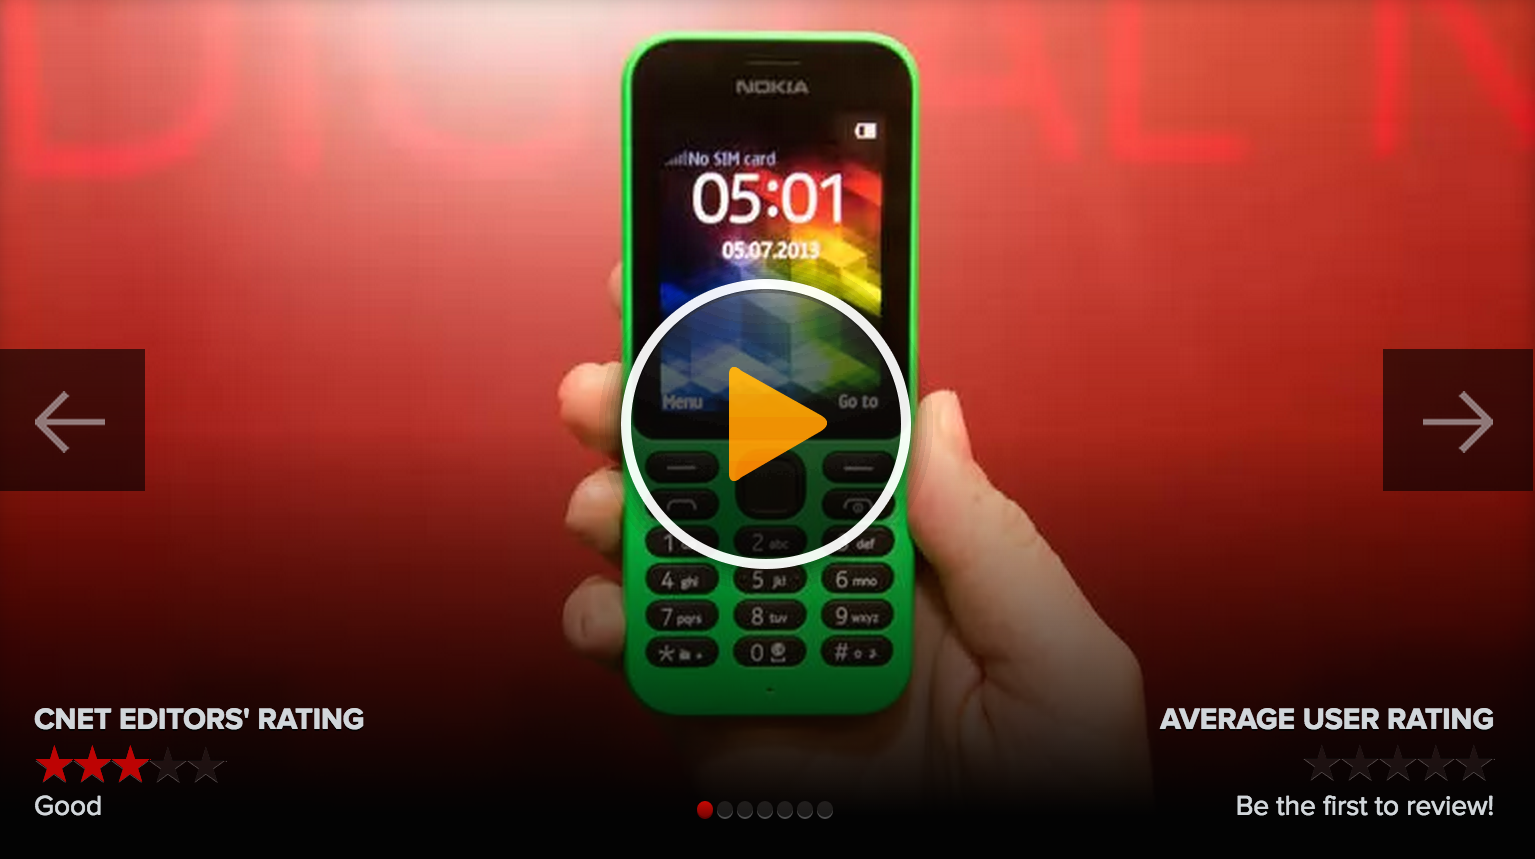 Hands on with the Nokia 215 - Opera India